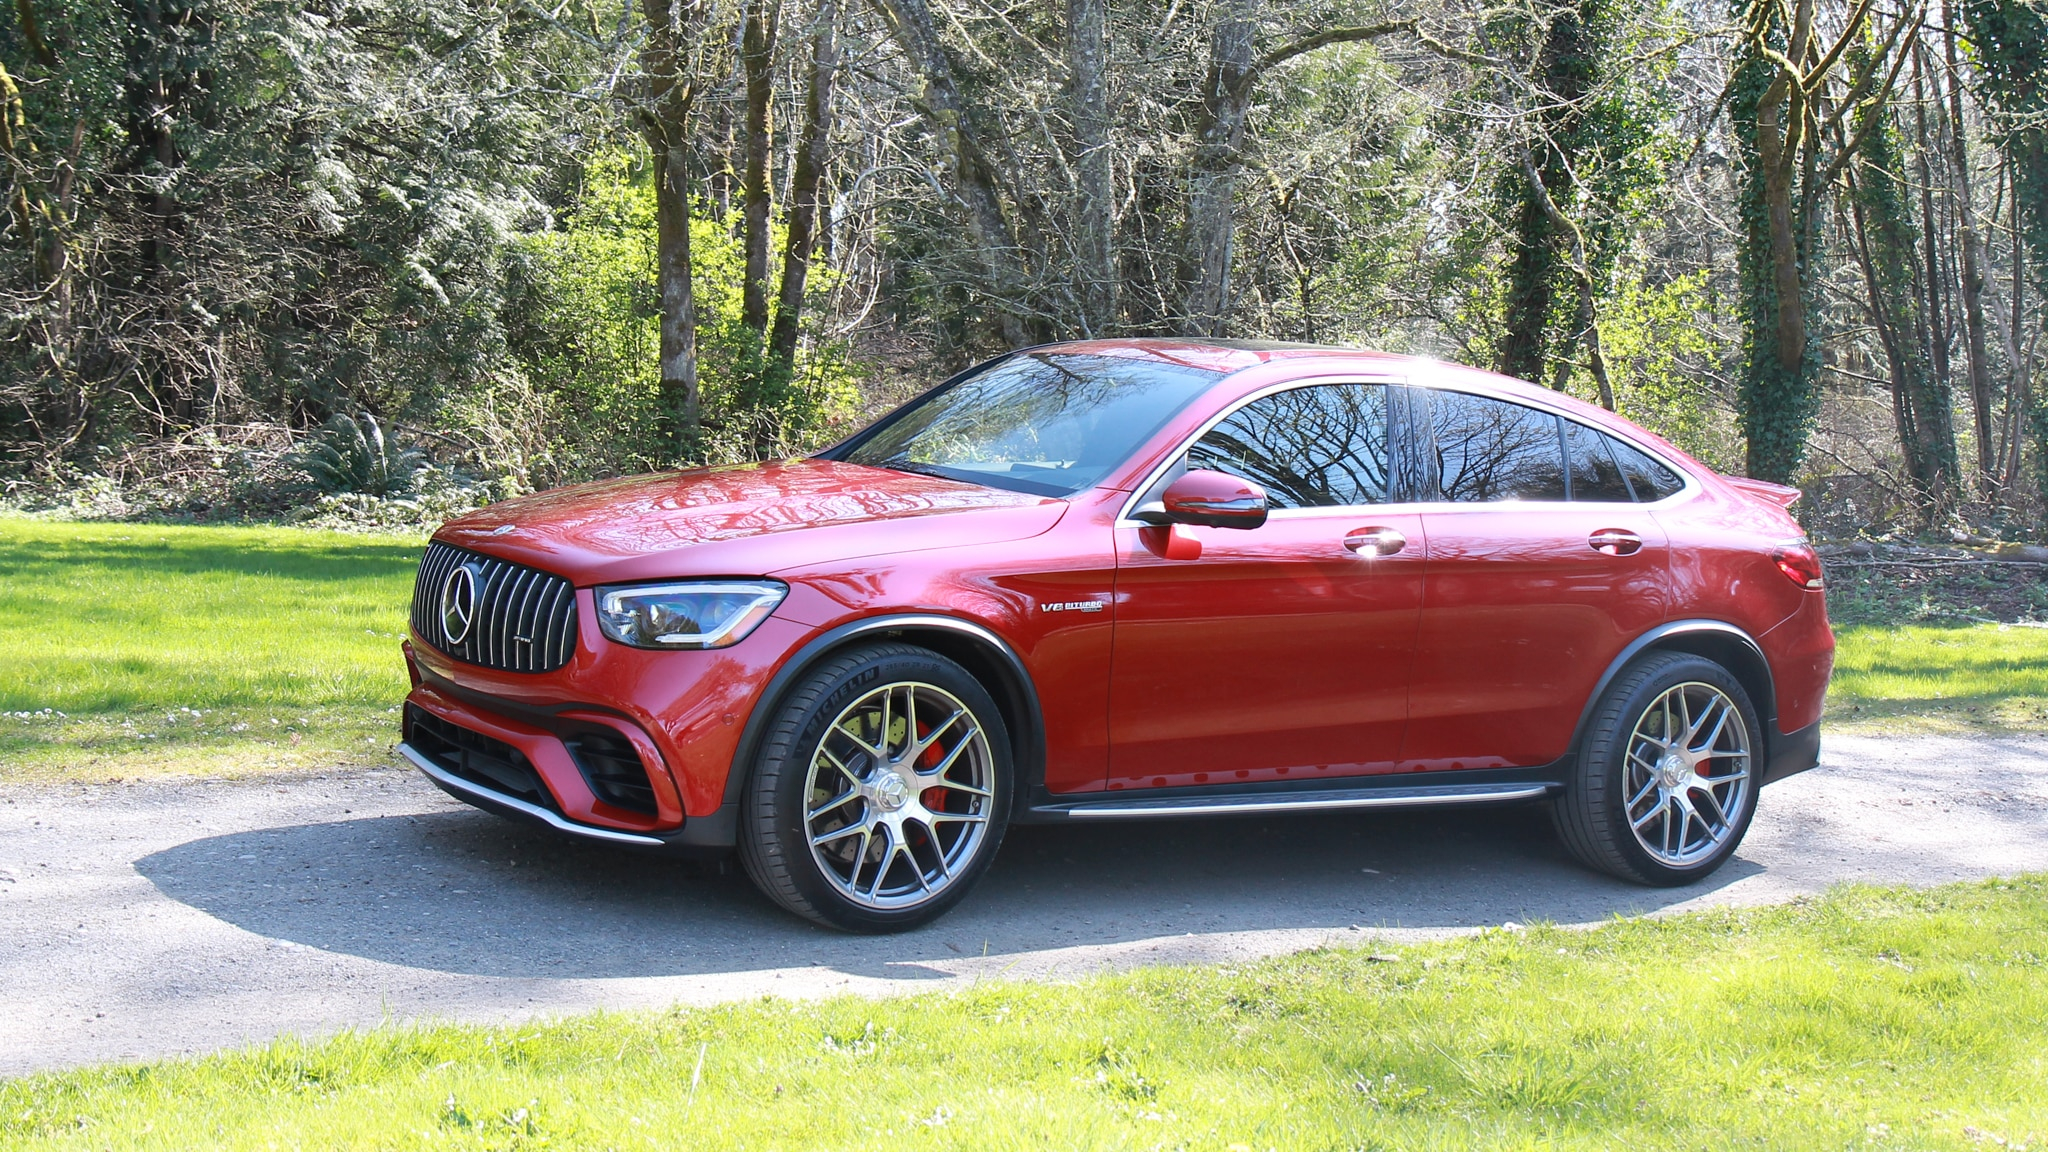 Mercedes Los Angeles >> 2020 Mercedes-AMG GLC 63 S Coupe: Five Things to Love